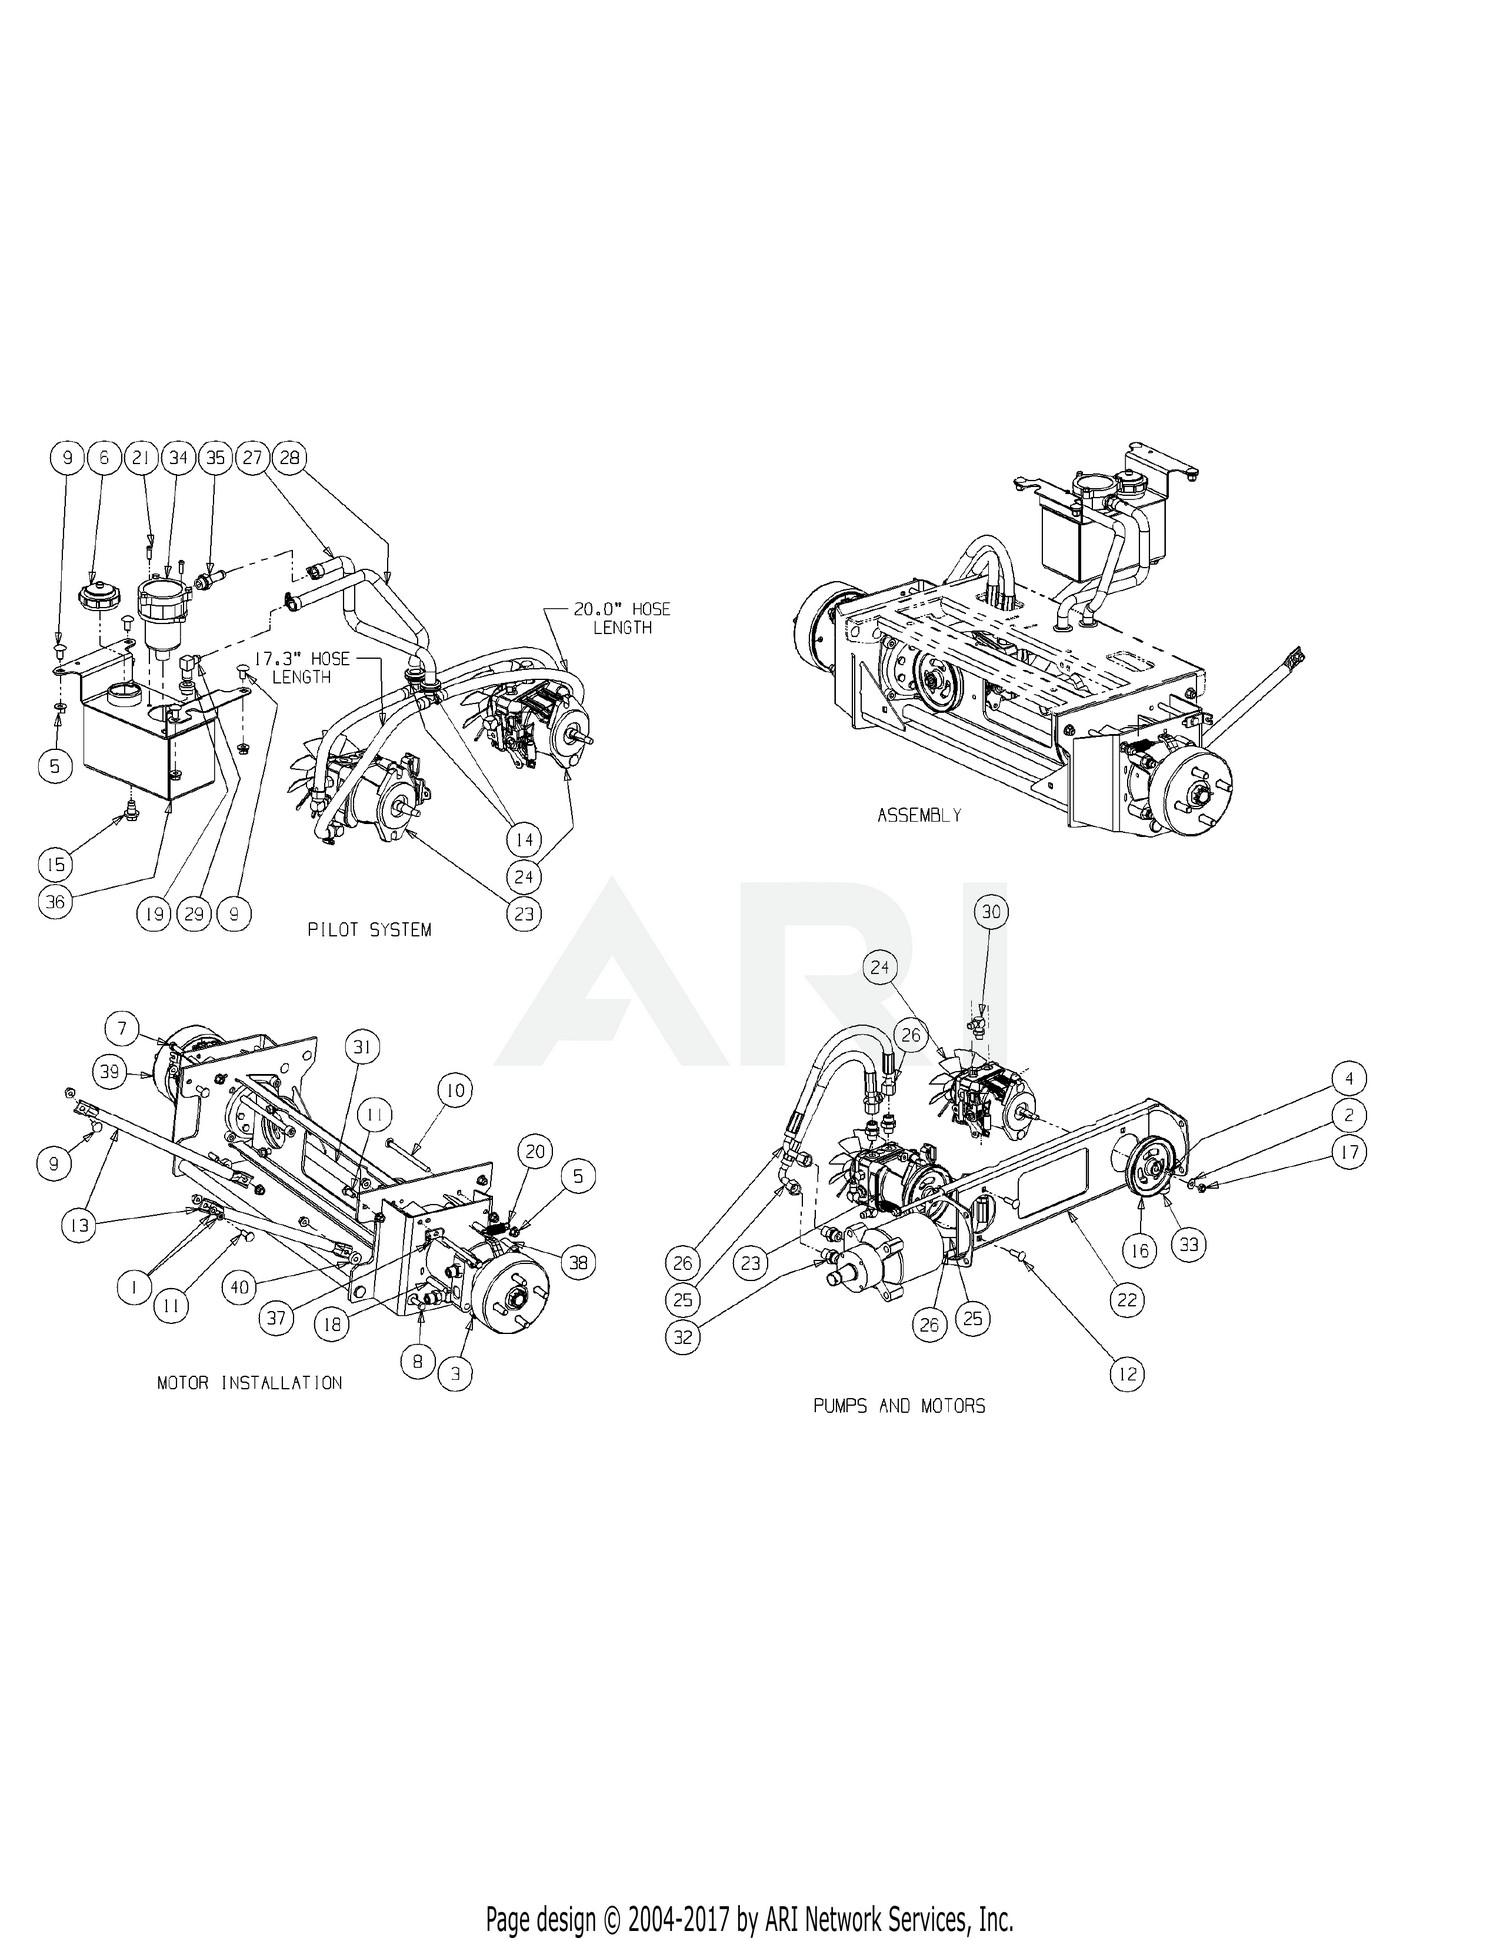 7 3 Powerstroke Parts Diagram Cub Cadet Parts Diagrams Cub Cadet M72 Ct 53al8ctz750 Tank 28 Of 7 3 Powerstroke Parts Diagram 6 0 Powerstroke Injector Wiring Diagram Reference Wiring Harness 7 3